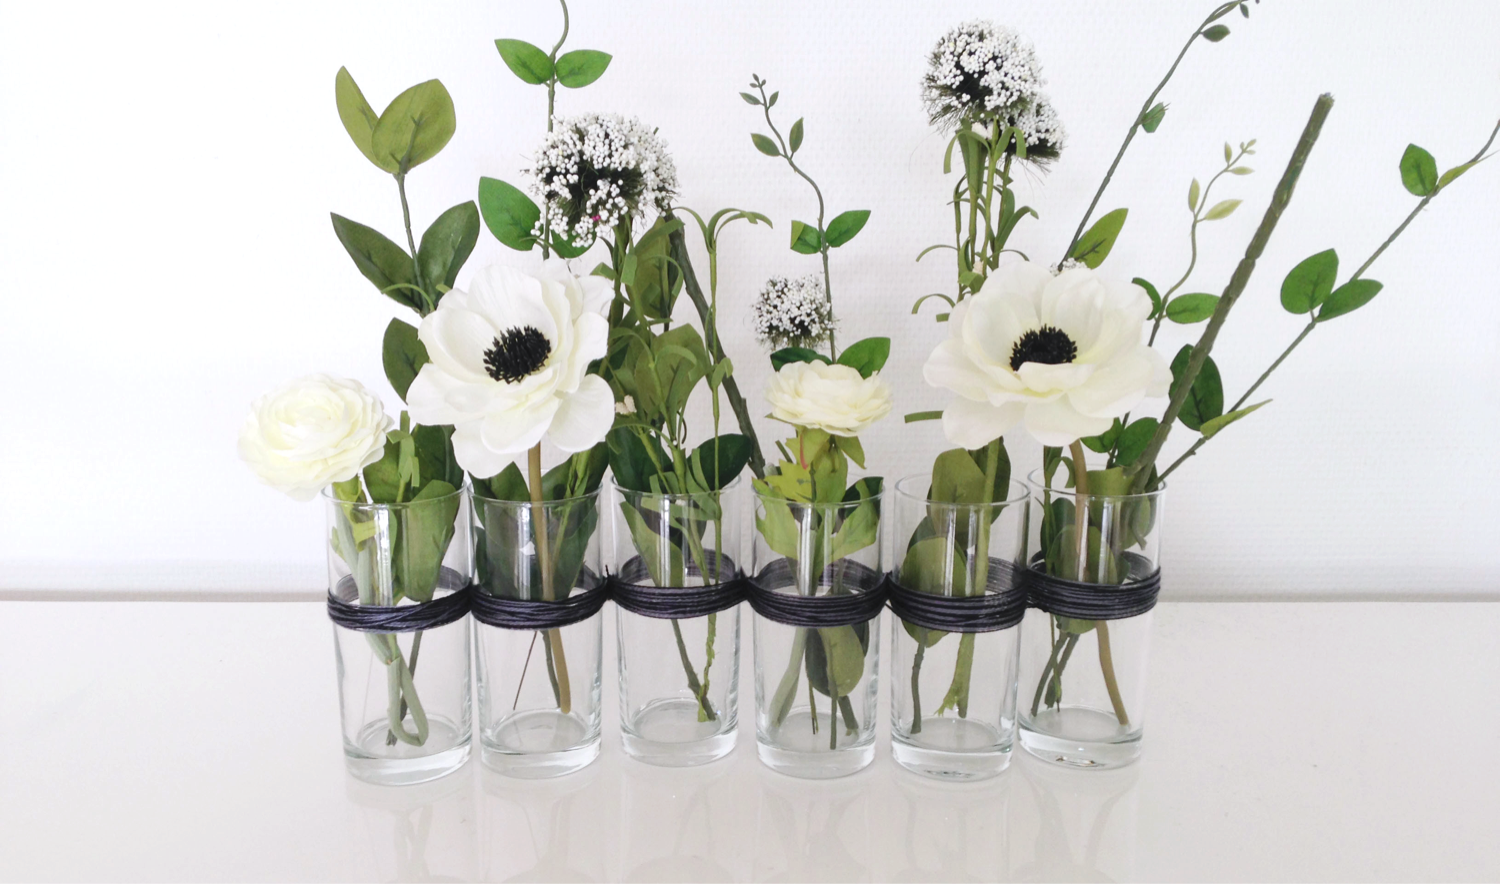 diy vase d 39 avril jolies id es fleurs et plantes vase. Black Bedroom Furniture Sets. Home Design Ideas